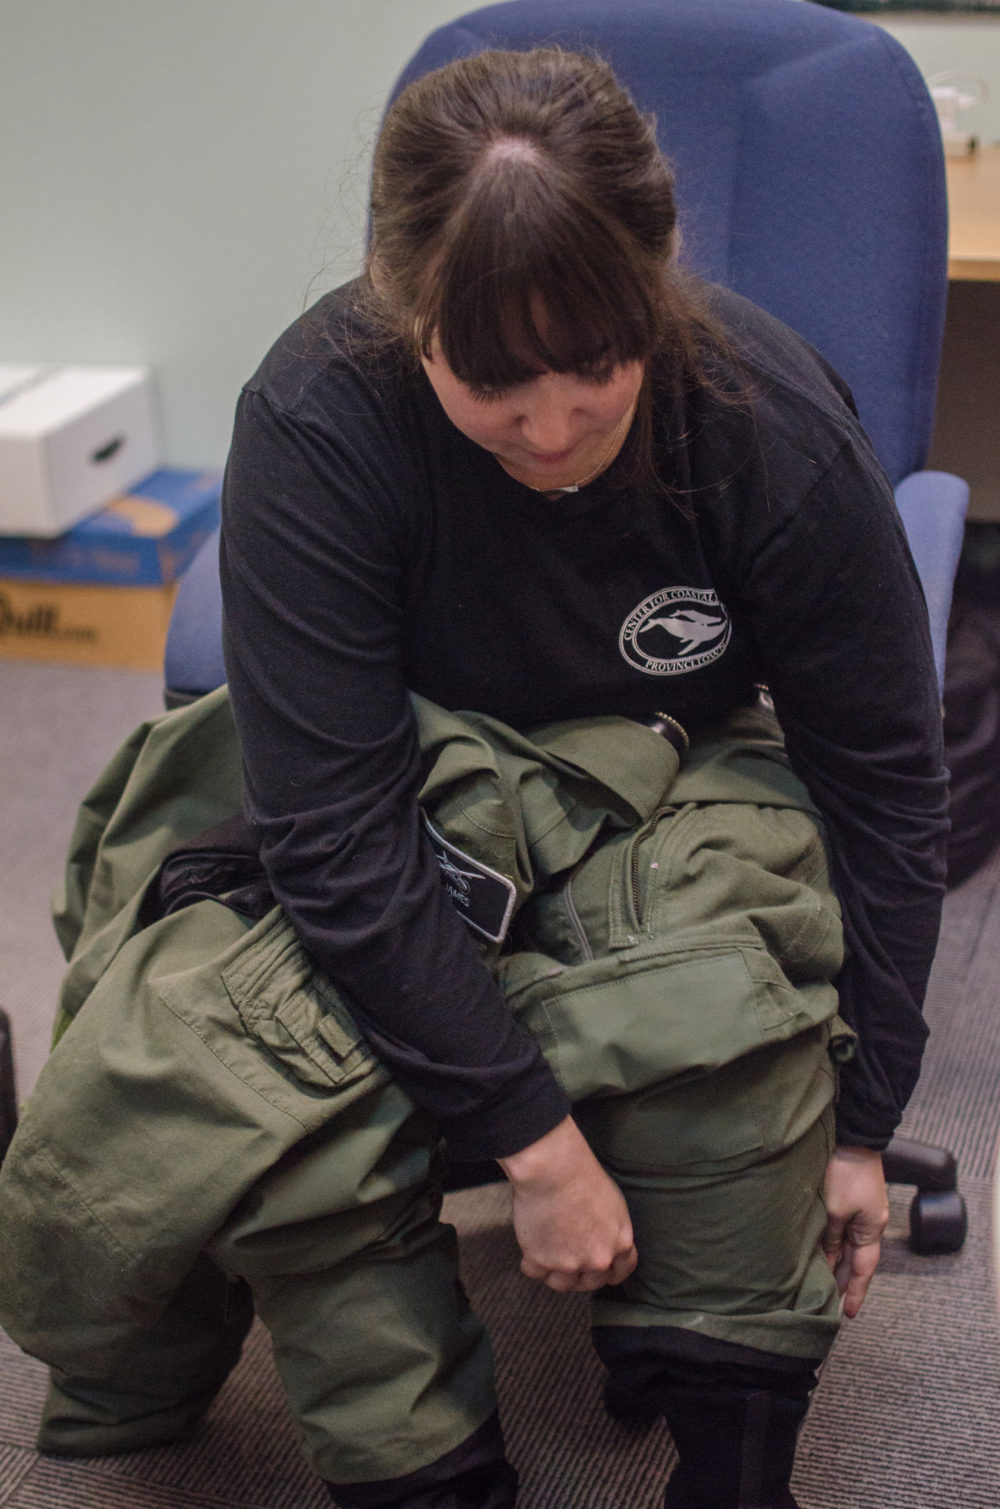 Amy James puts on her flight suit before a survey. (Sharon Brody/WBUR)